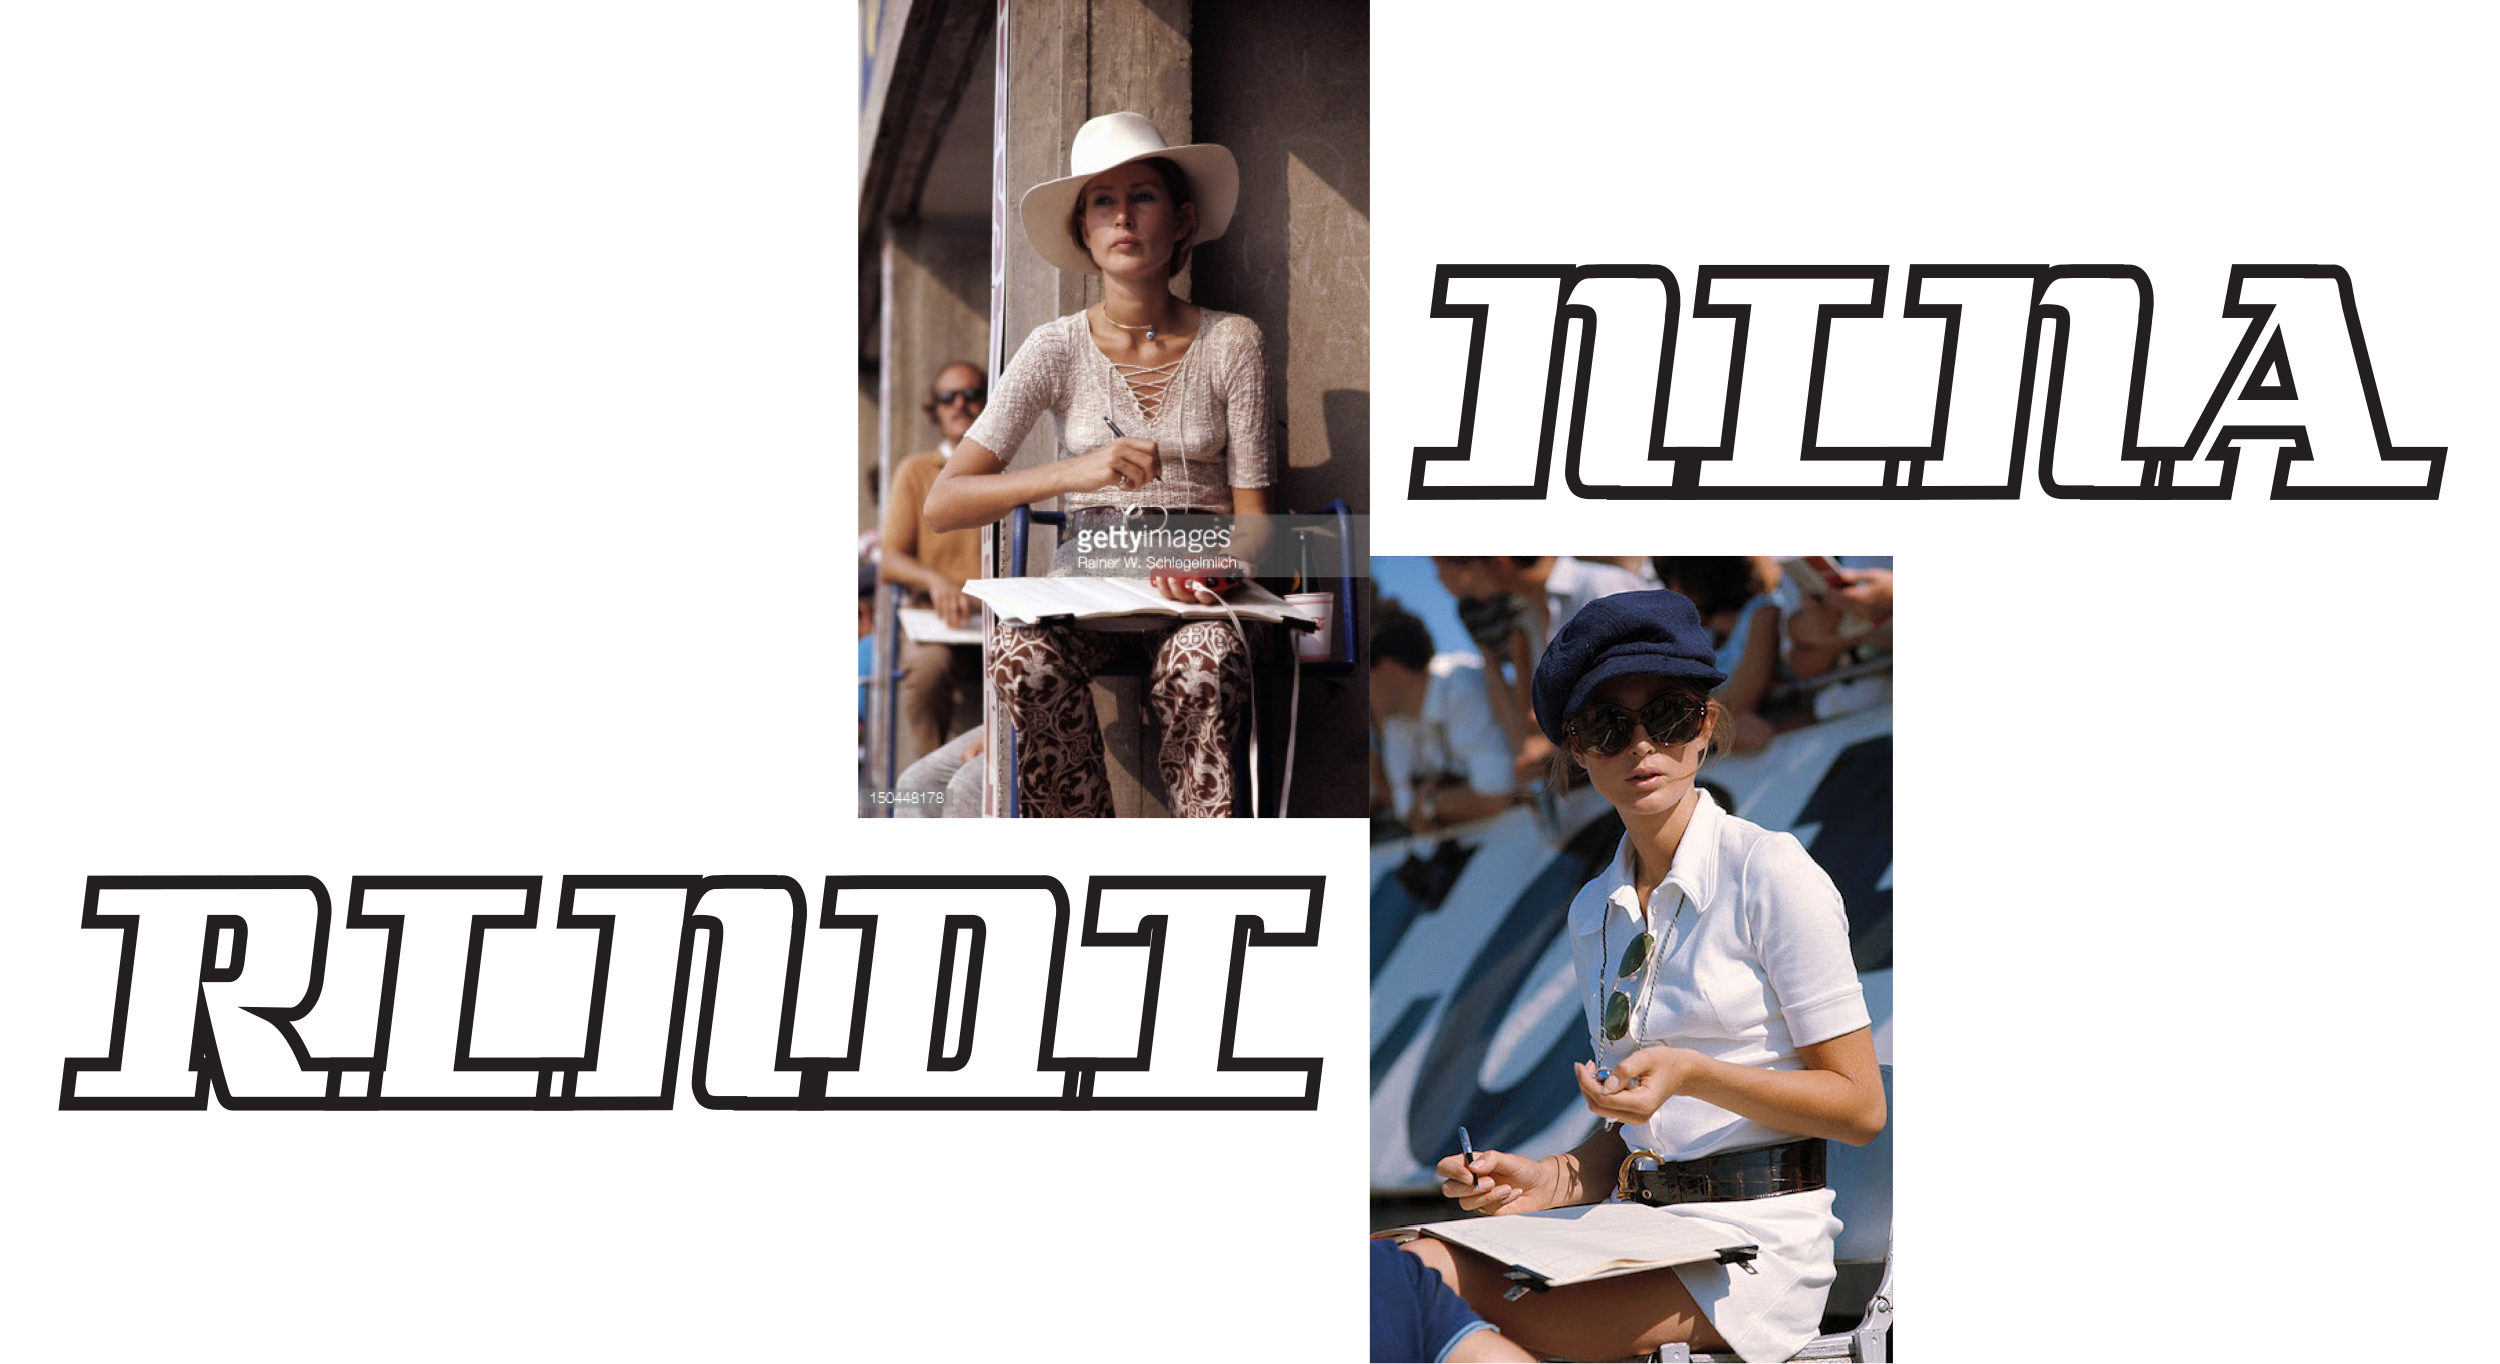 Two images of Nina Rindt sitting track-side with her clipboard and stopwatch